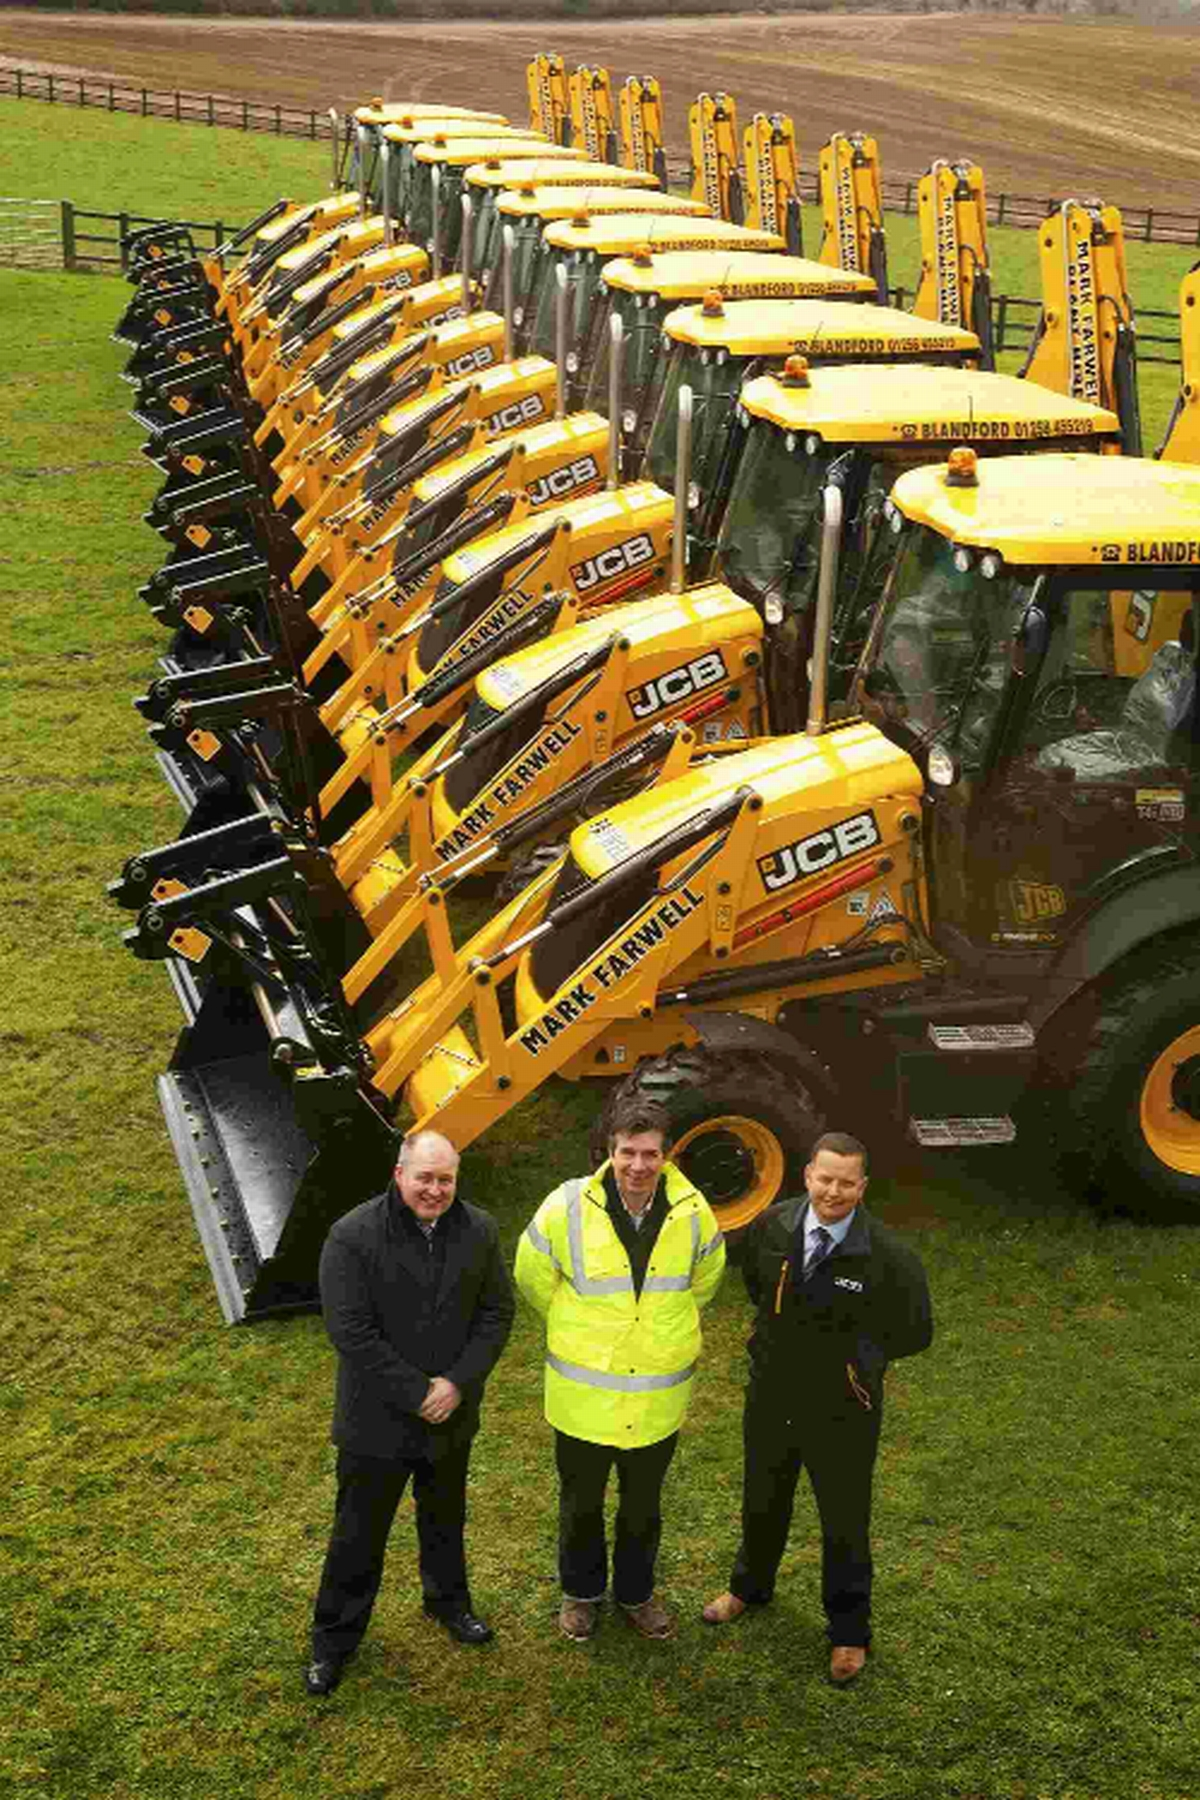 TOP GEAR: From left, Dave Probert, of dealer Holt JCB, company owner Mark Farwell and Richard Davis of Holt JCB